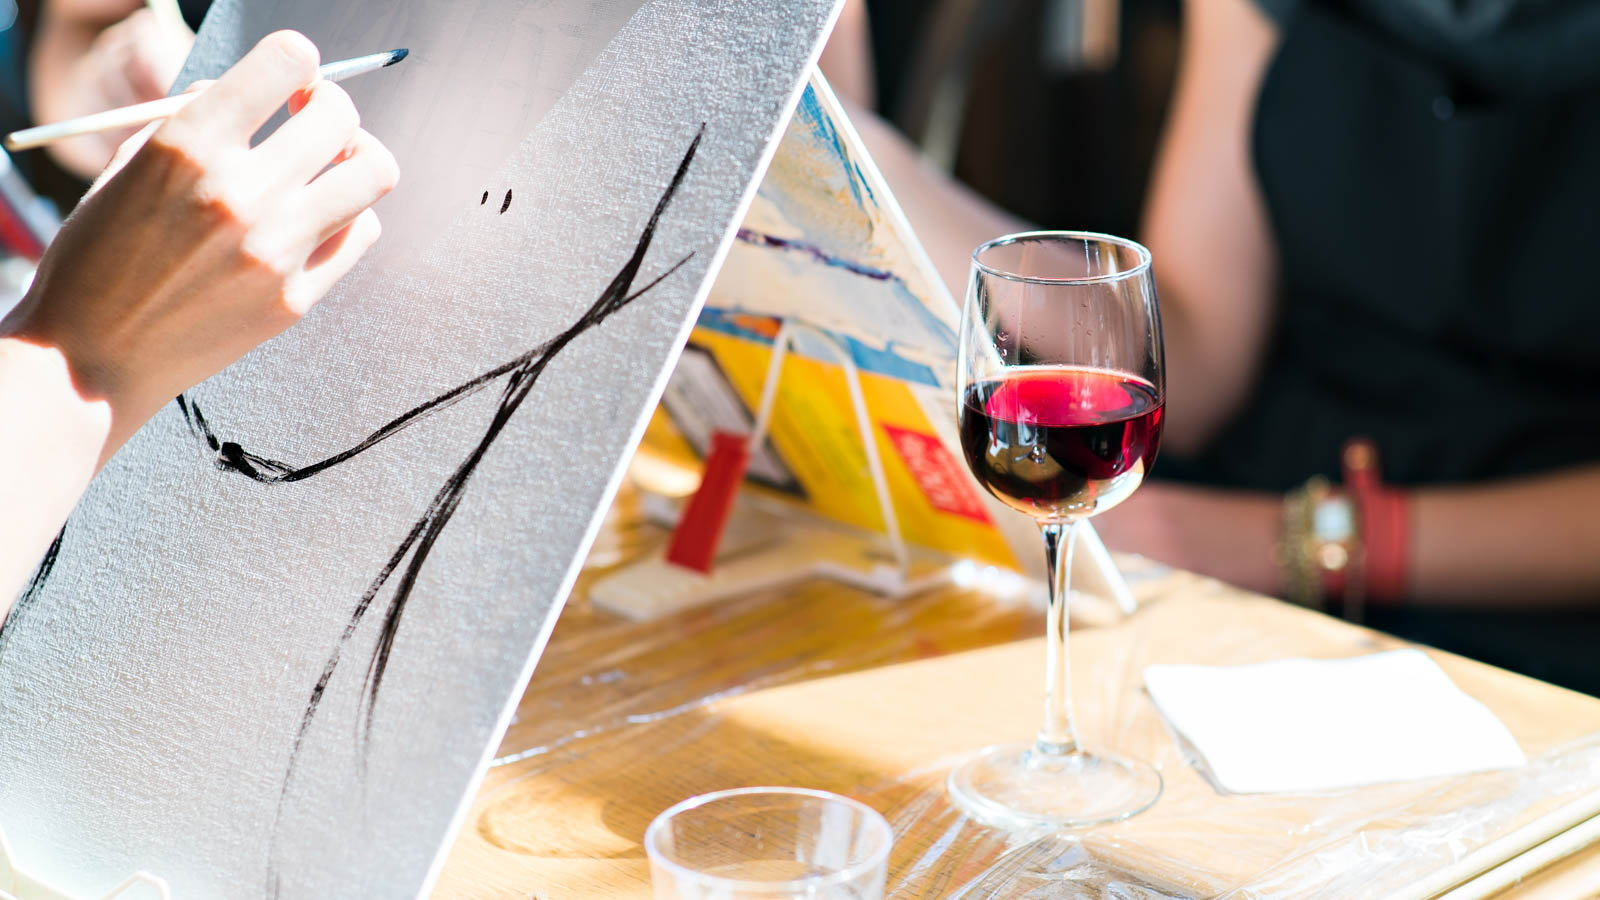 oil painting with a glass of wine